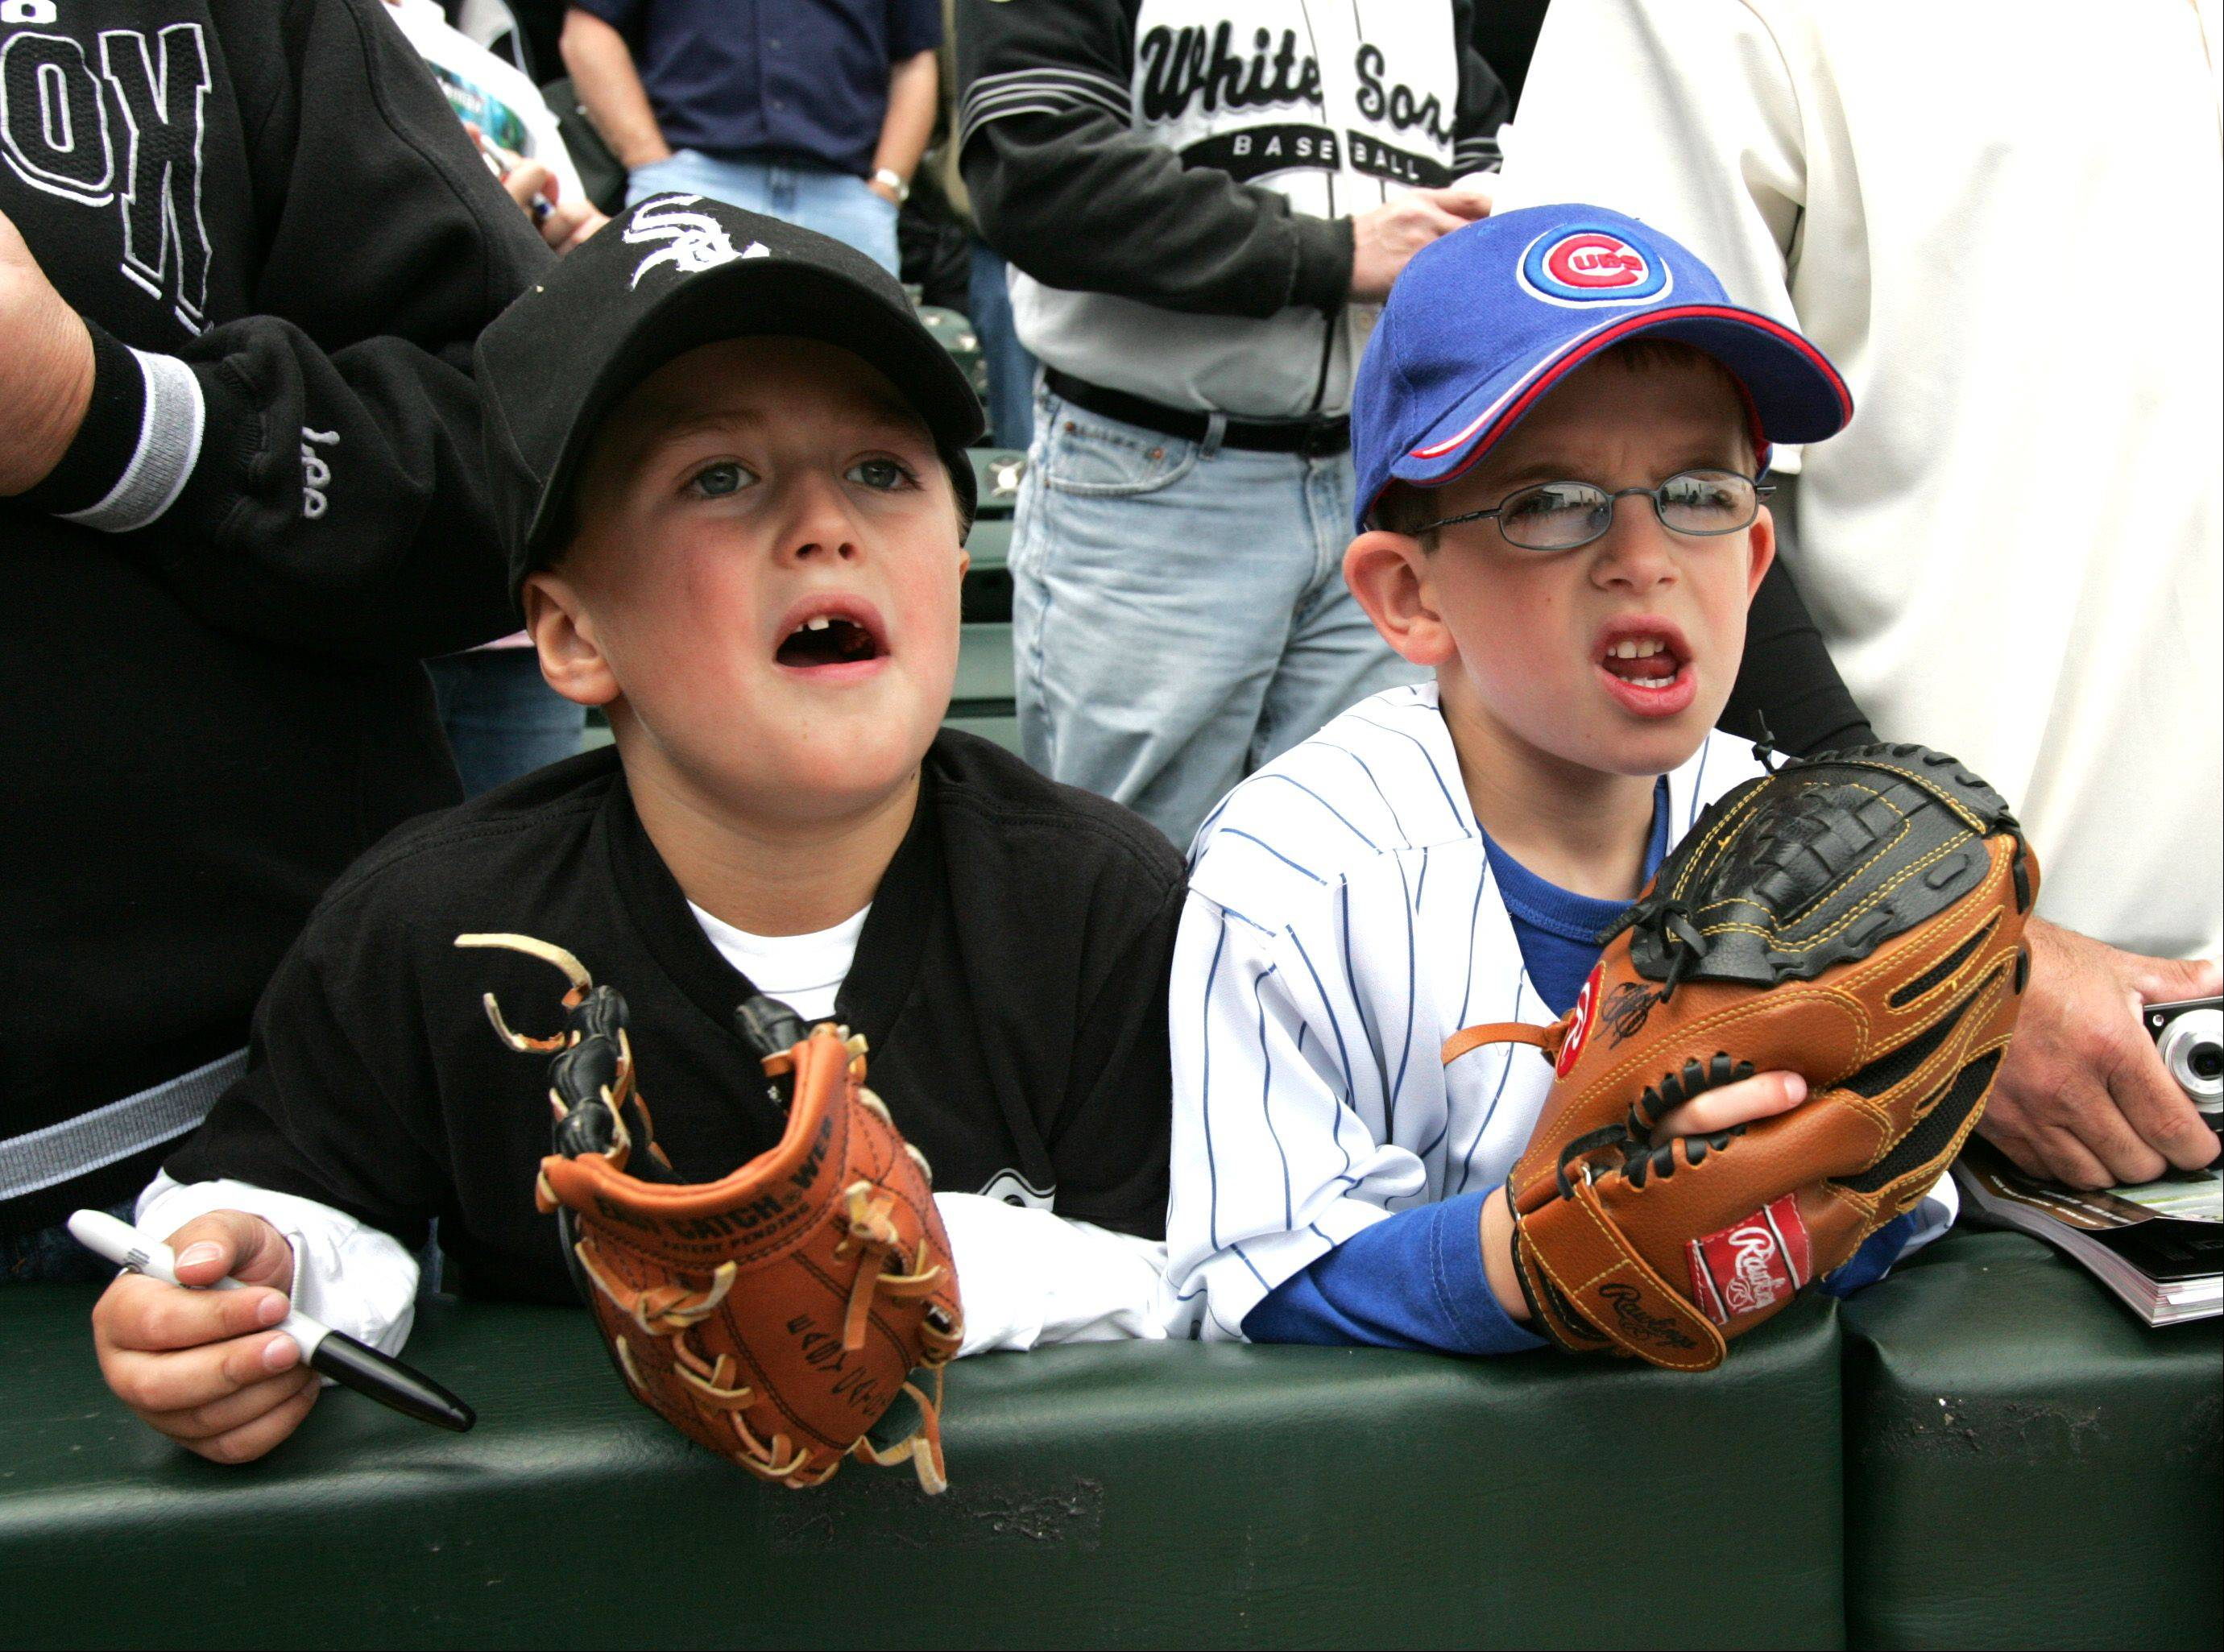 Best of friends Joey Pepper, left and Erik Larson, right, both of South Elgin hunt for autographs as the Chicago Cubs battle the White Sox during the Crosstown Classic at U.S. Cellular Field, Friday.